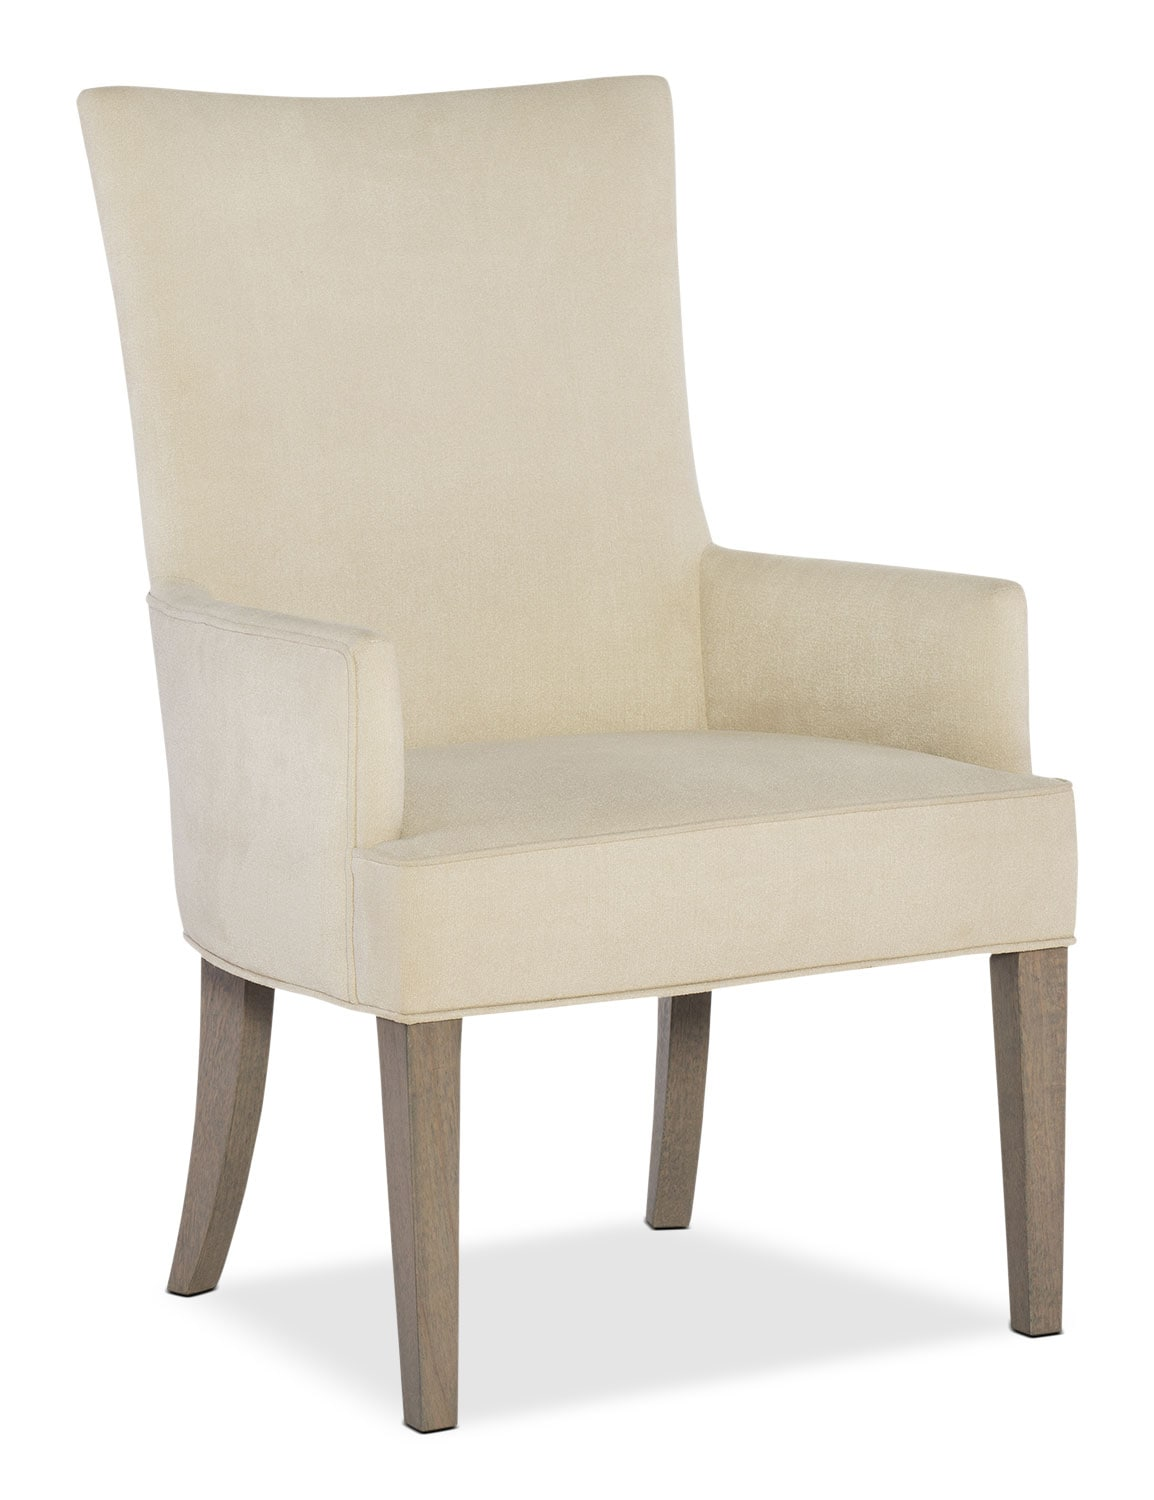 Dining Room Furniture - Rachael Ray Highline Upholstered Host Chair - Greige